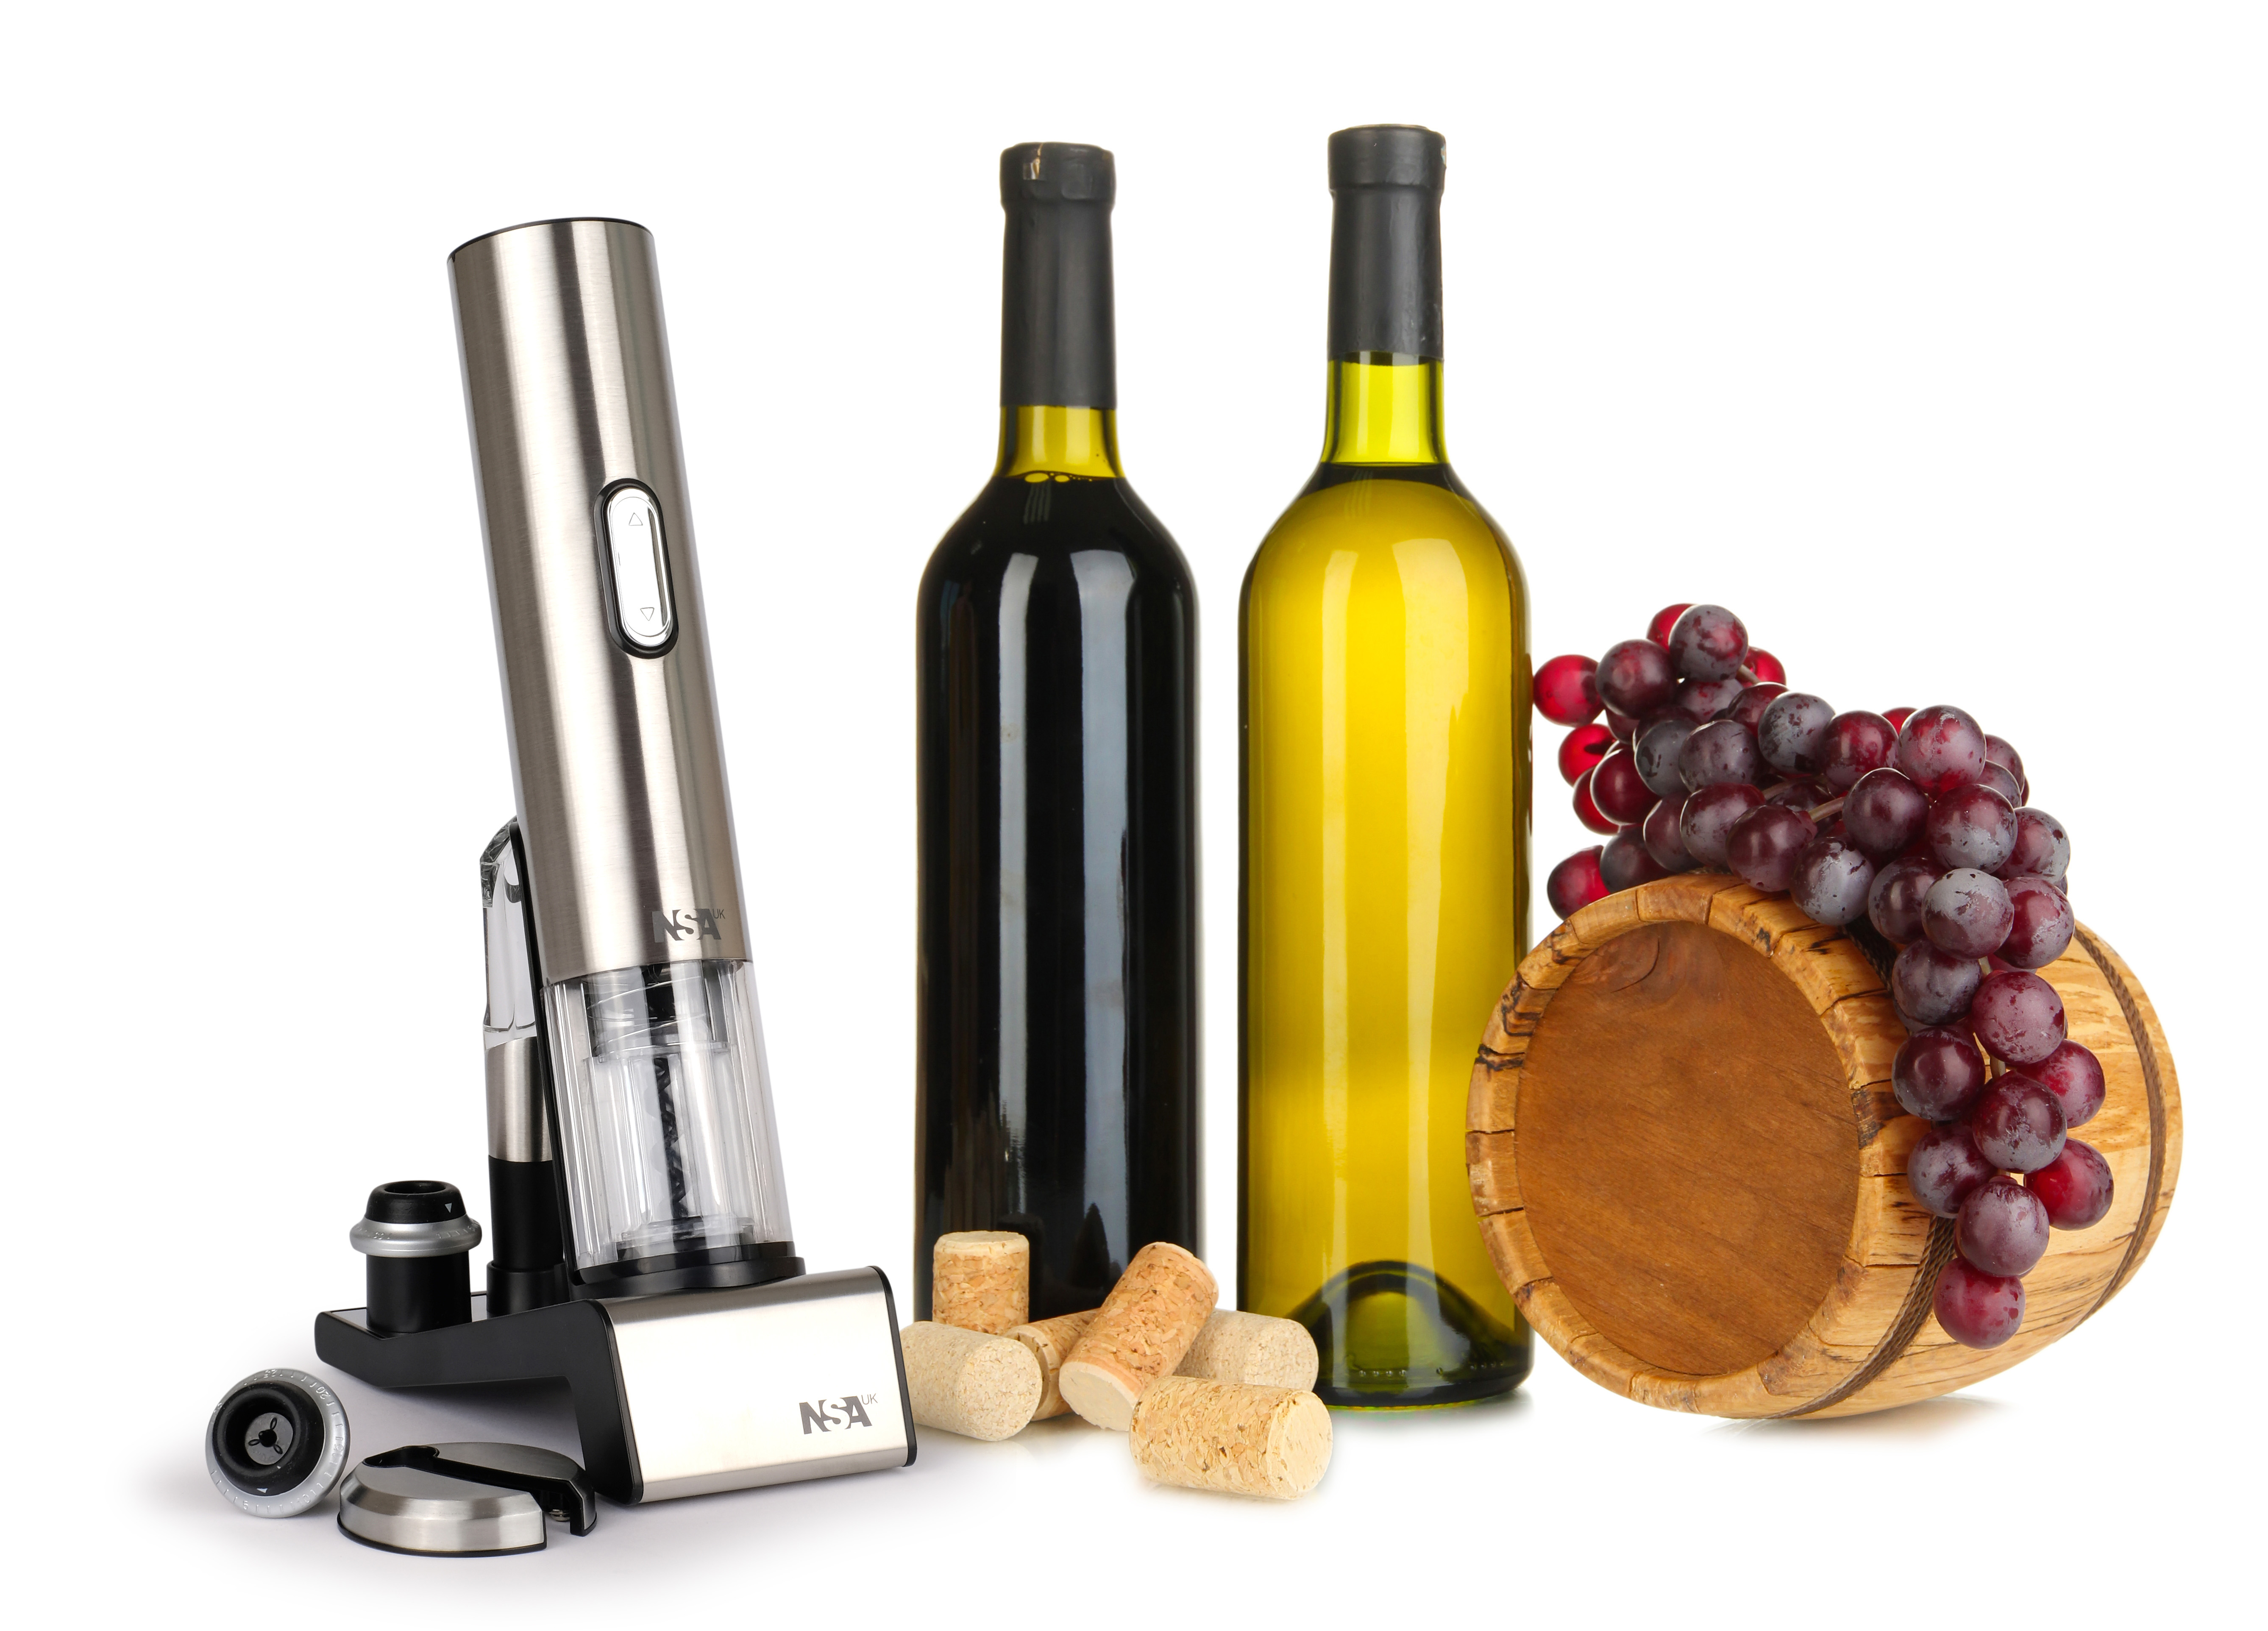 190 & Unique Christmas Gift Ideas for Wine Lovers